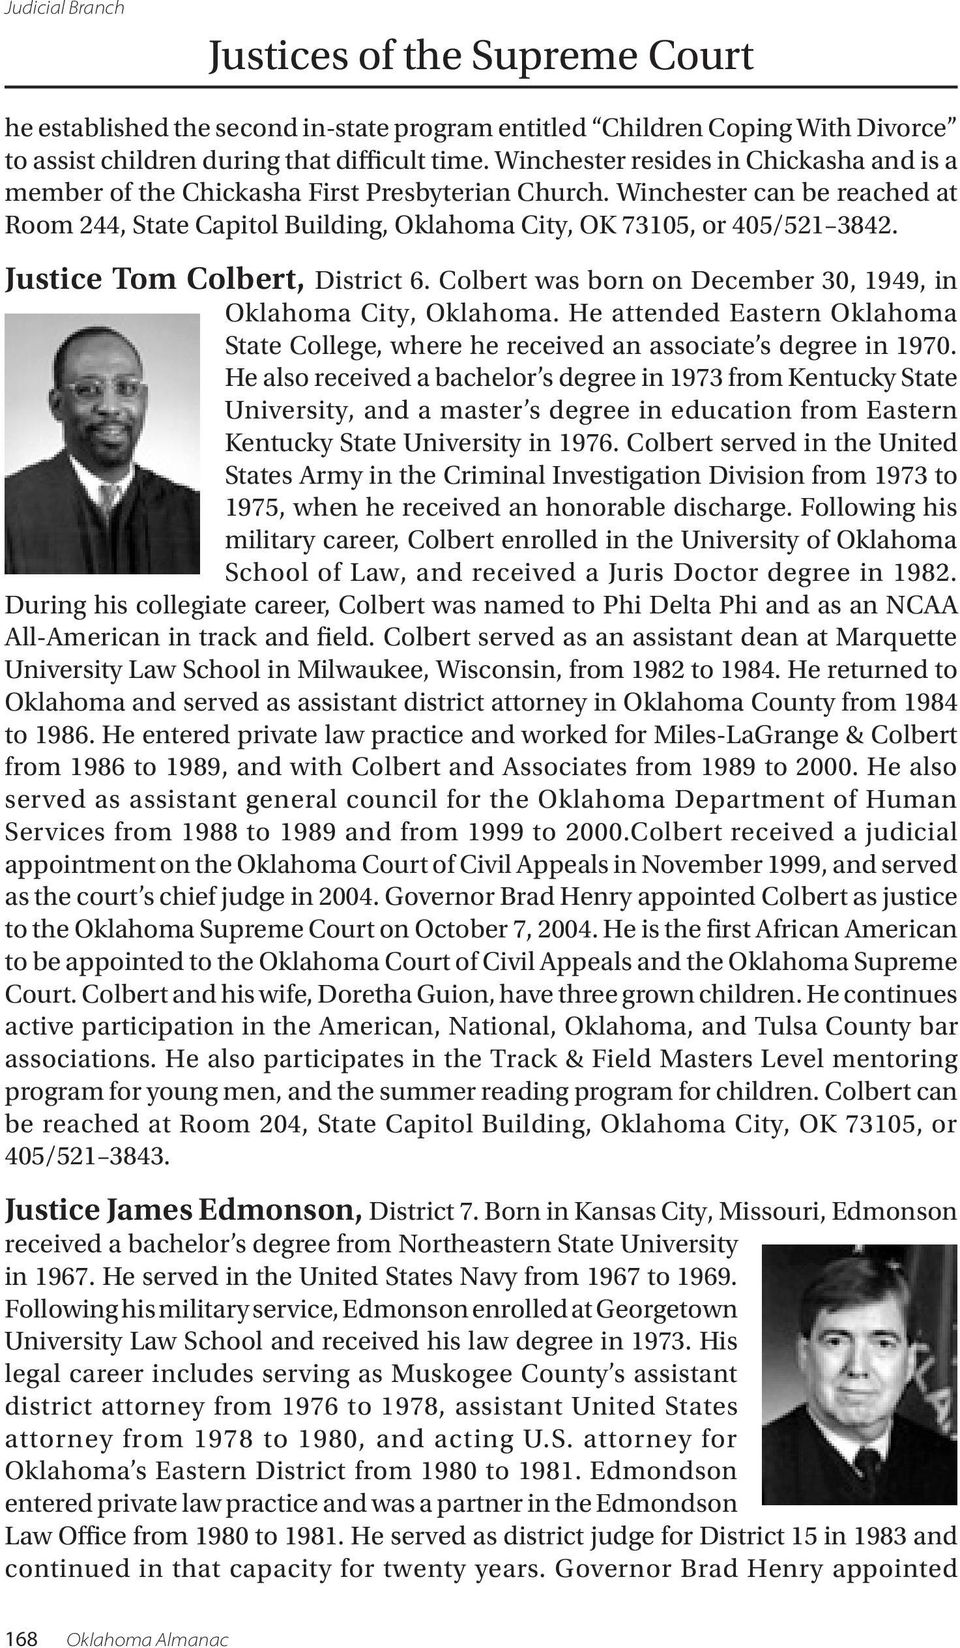 Justice Tom Colbert, District 6. Colbert was born on December 30, 1949, in Oklahoma City, Oklahoma. He attended Eastern Oklahoma State College, where he received an associate s degree in 1970.